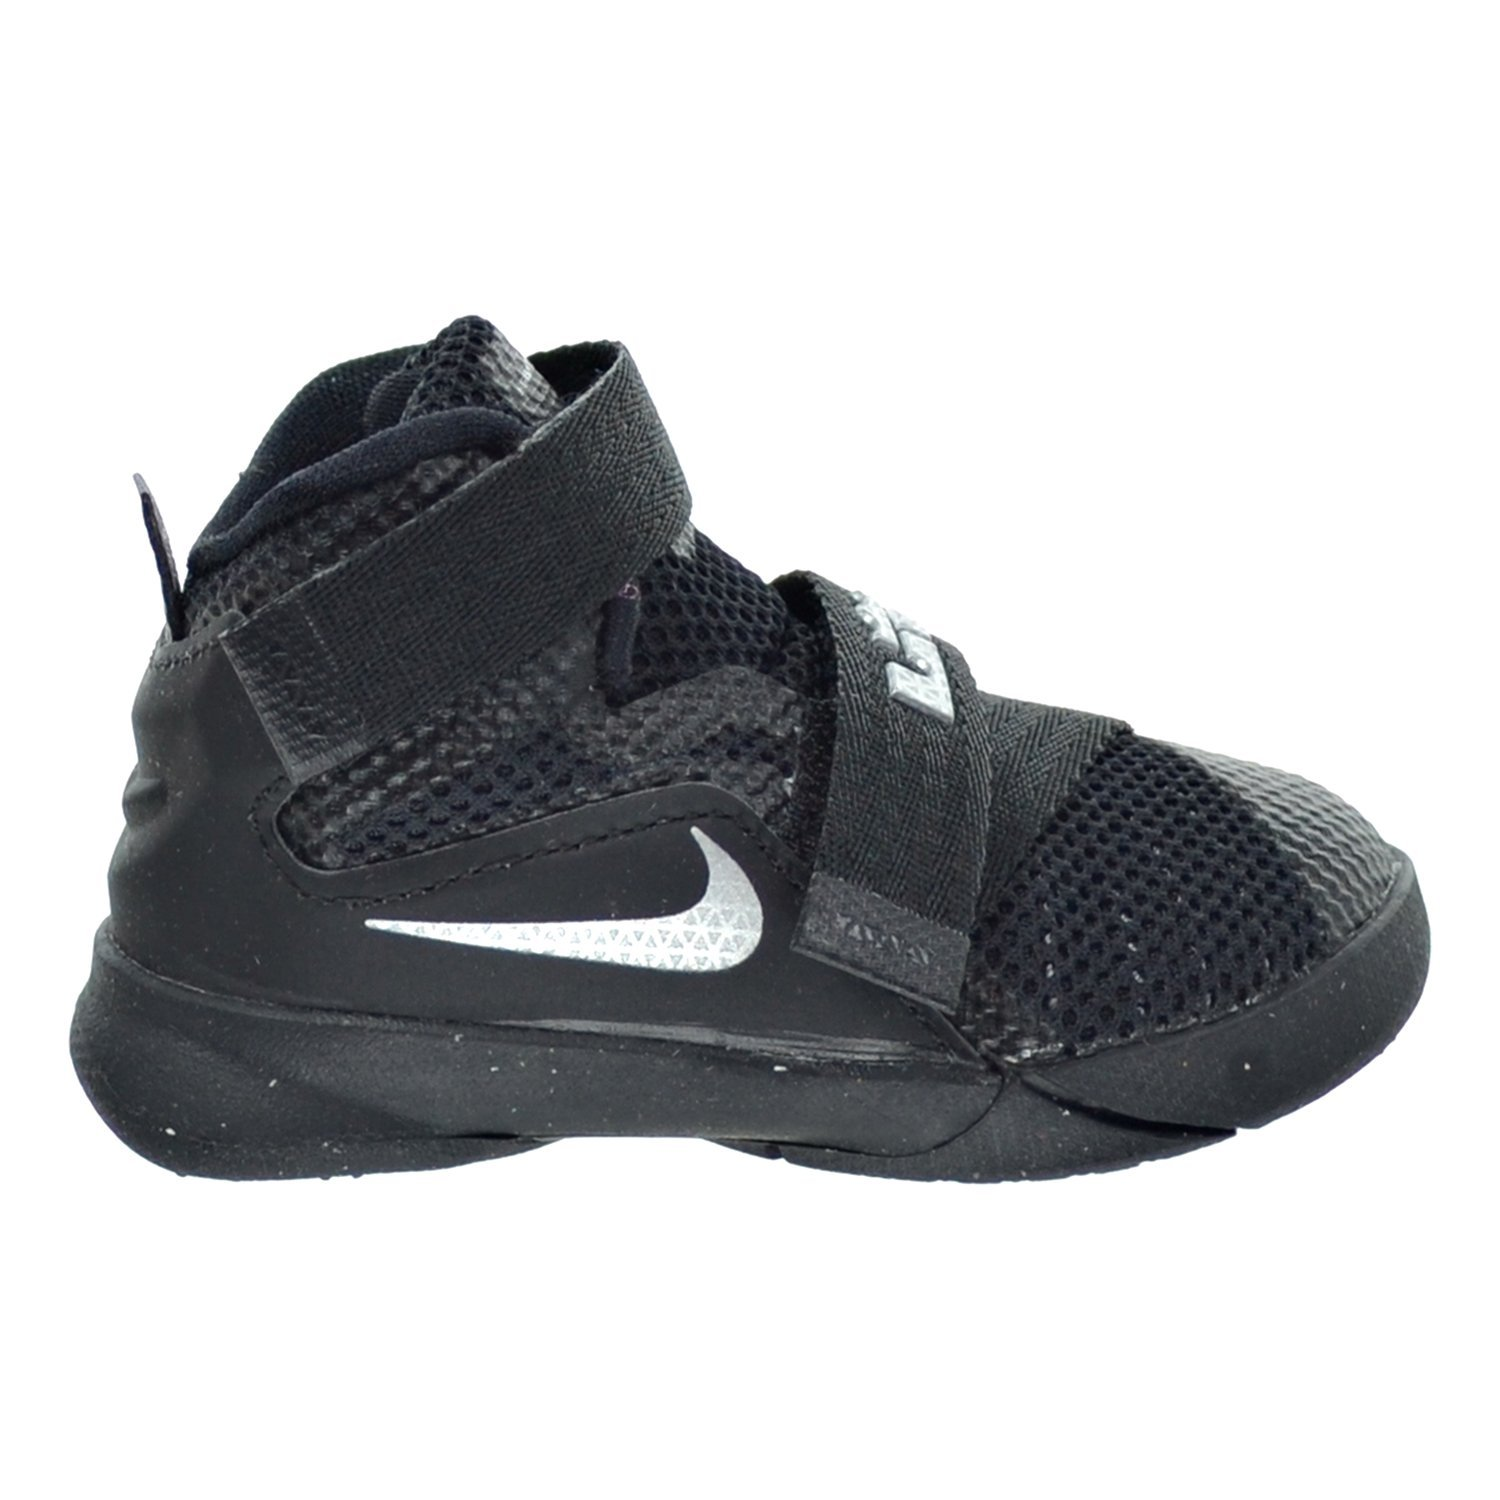 the latest 5364a cb577 Amazon.com   Nike Lebron Soldier IX (TD) Toddler s Shoes Black Metallic  Silver 776473-001 (5 M US)   Sneakers